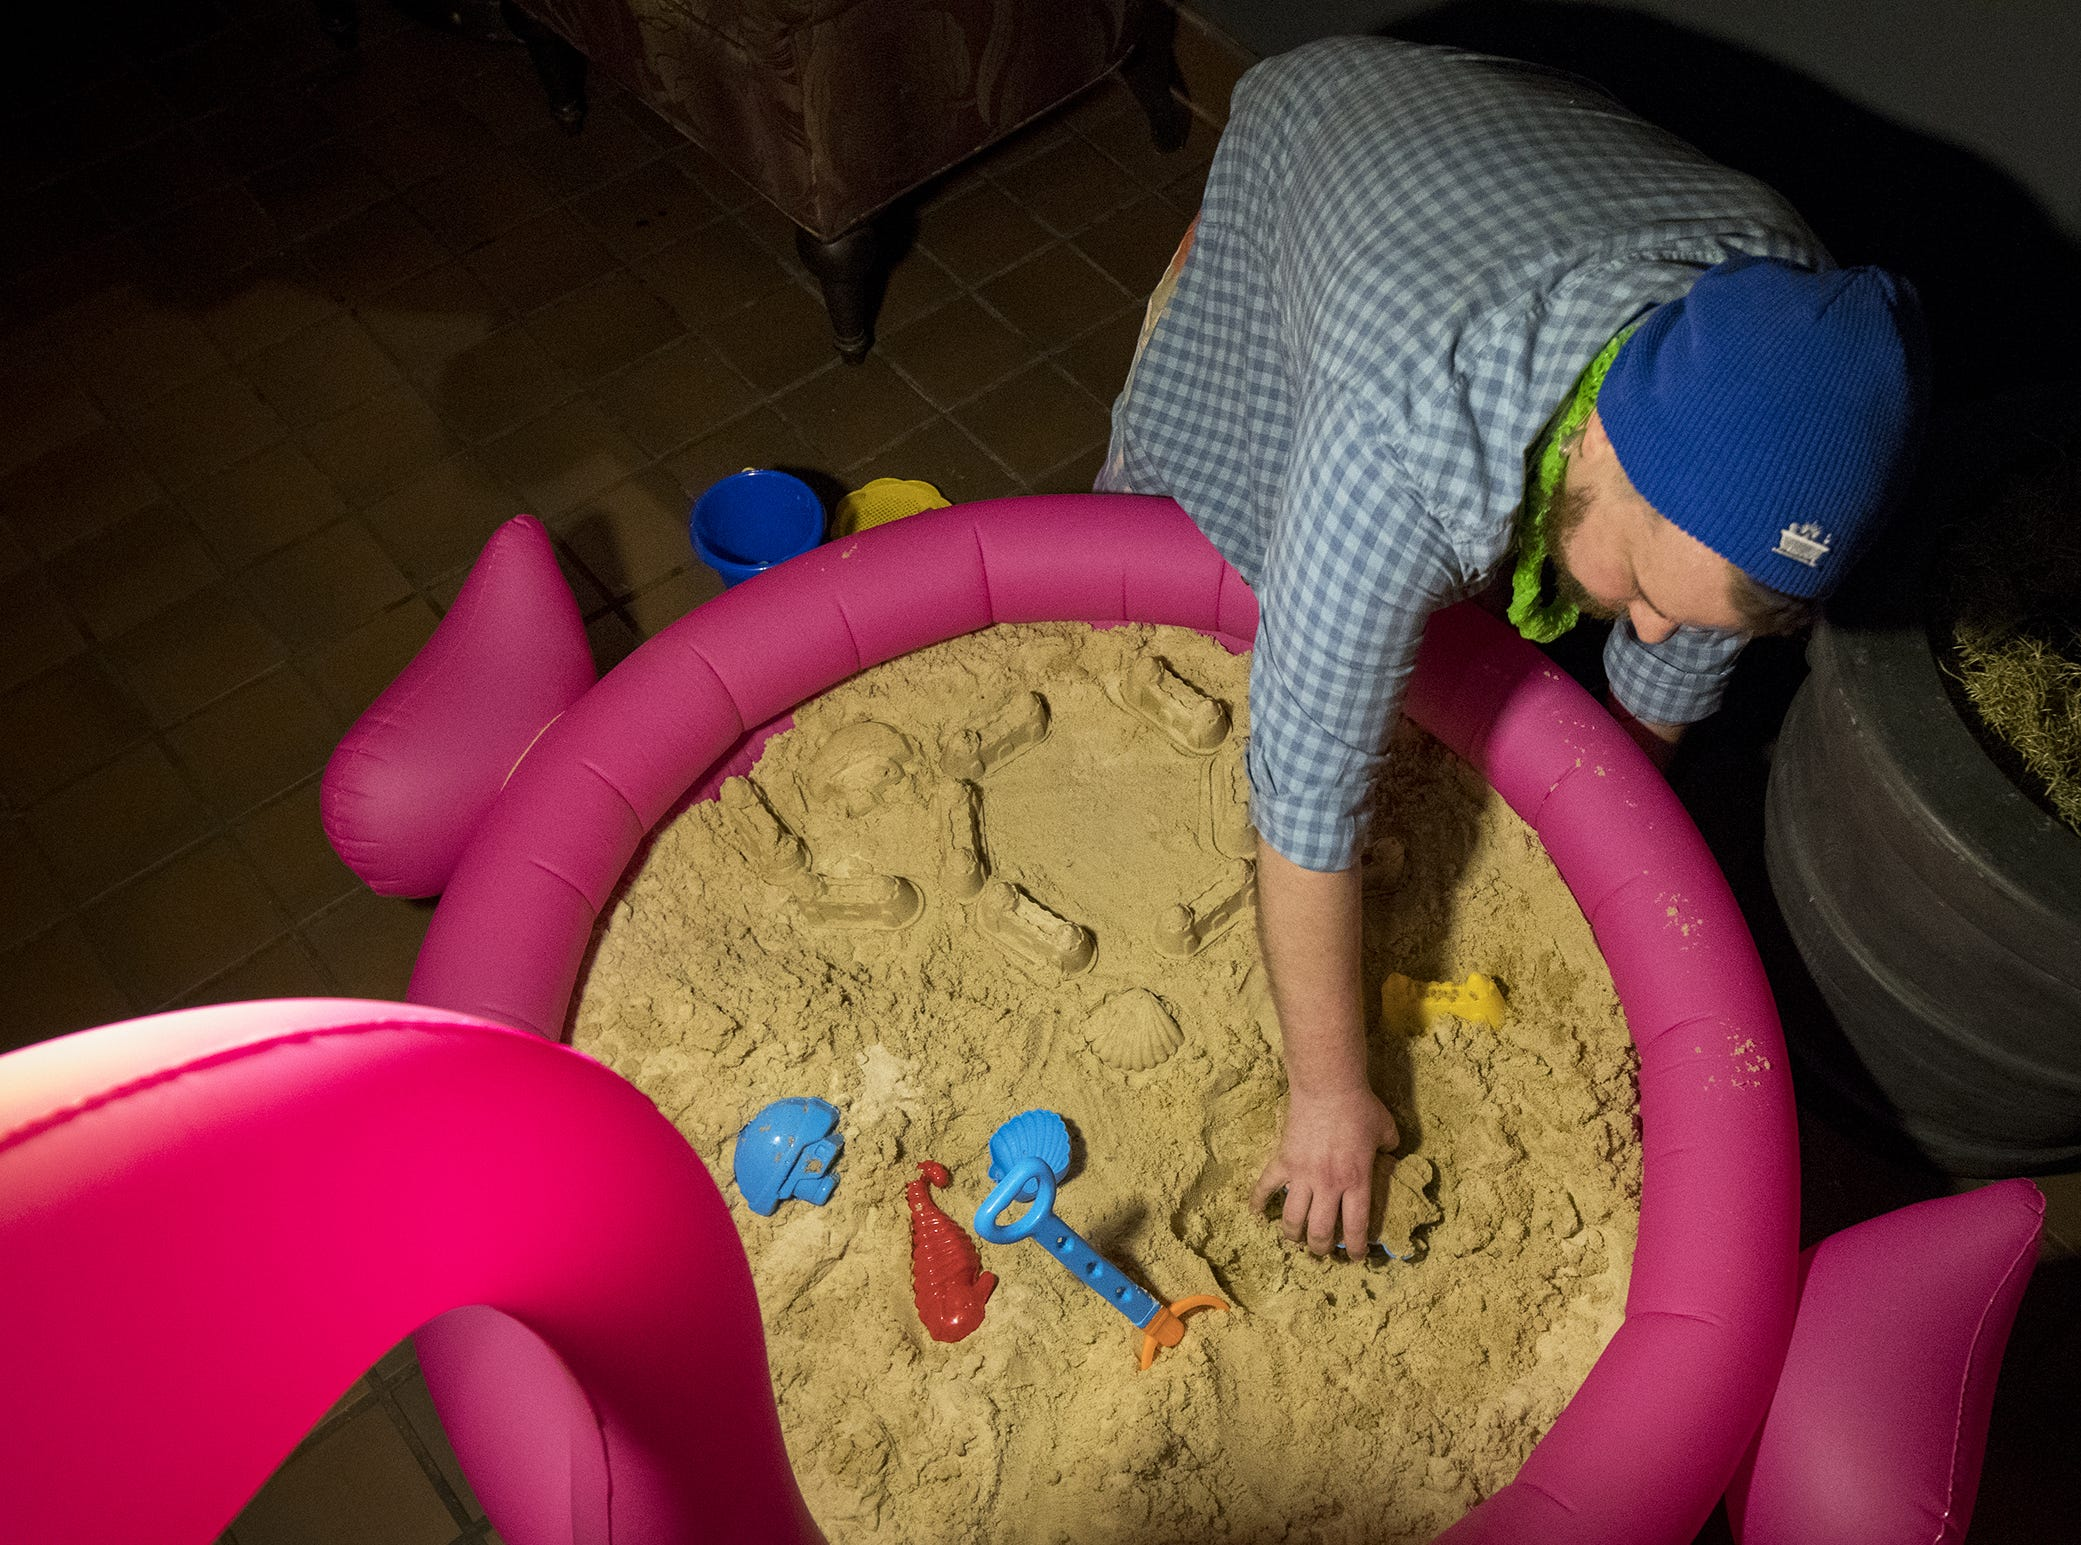 Taft's employee Jake Wedding tests out the sand brought in for Beach Night at Taft's Ale House January 17, 2019 in Cincinnati, Ohio.